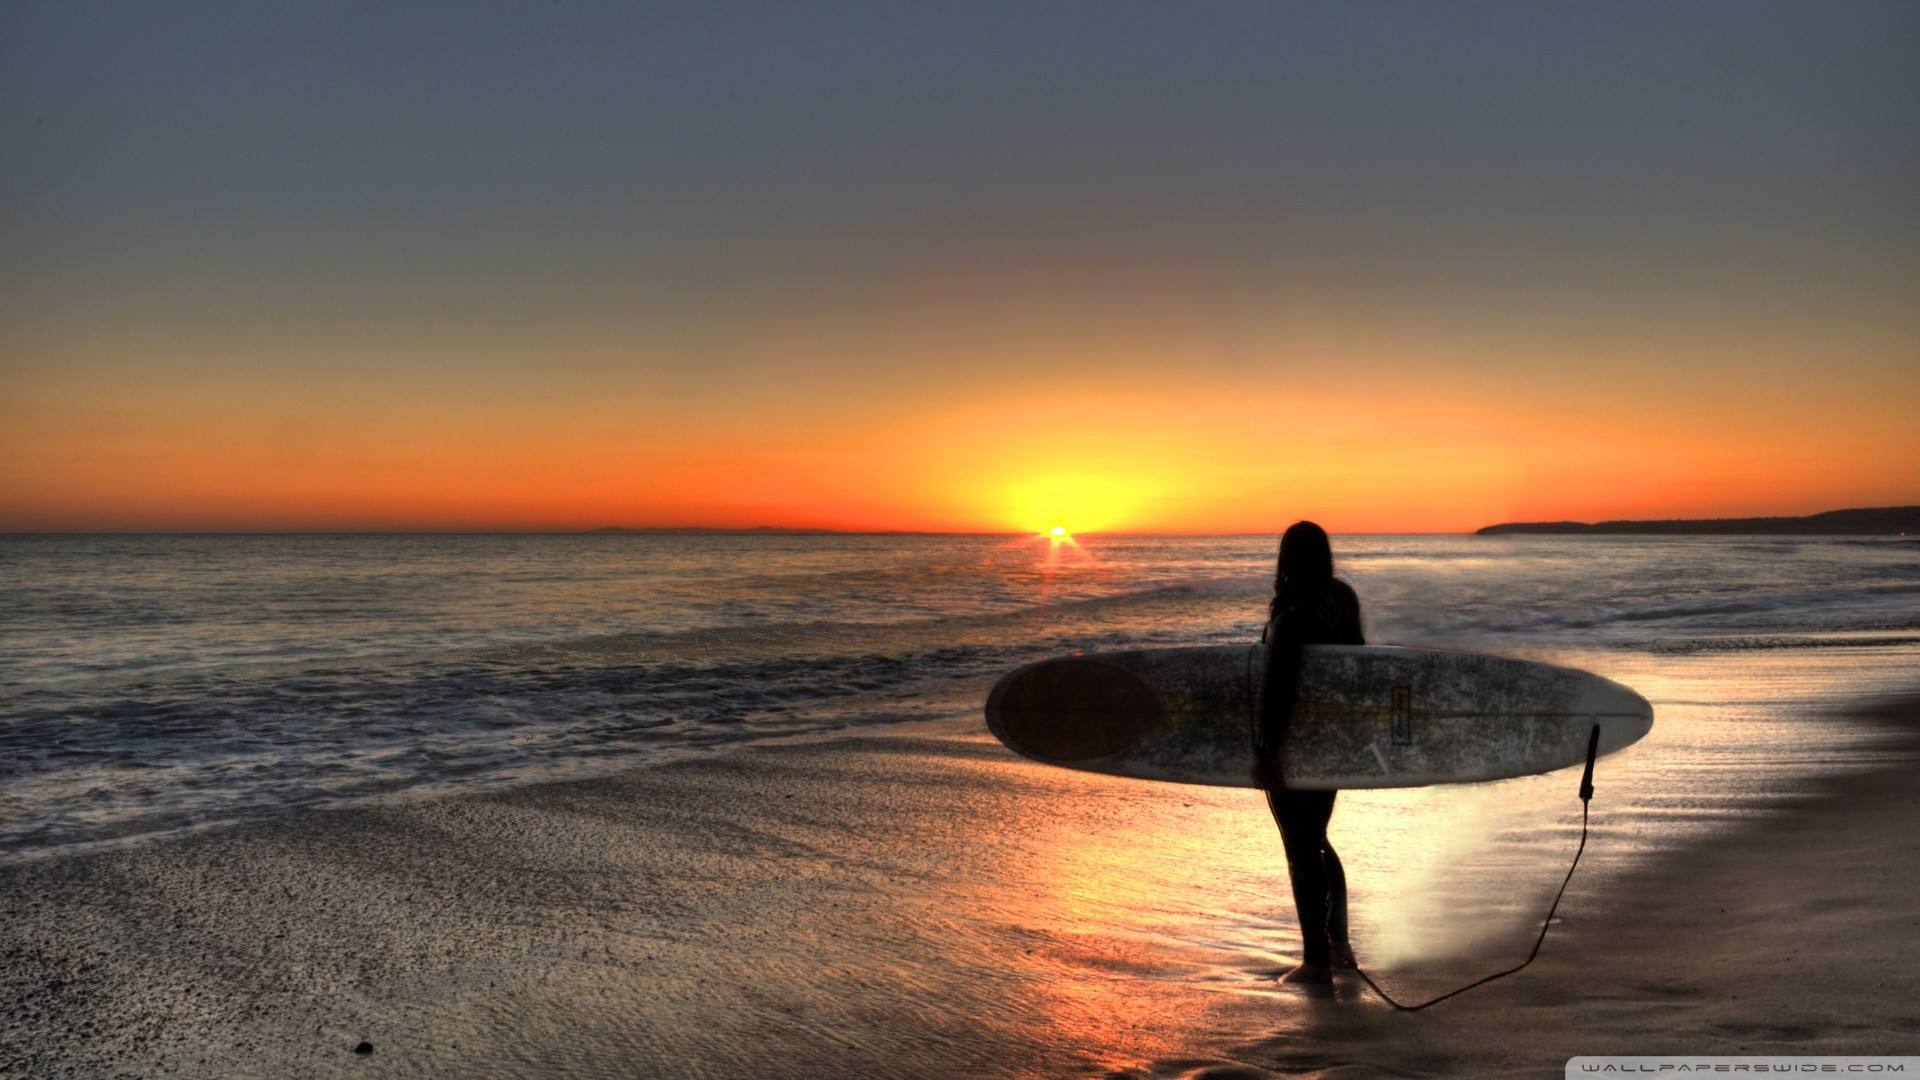 The Surfing Day Is Over HD Wallpaper Sport / Surfing .